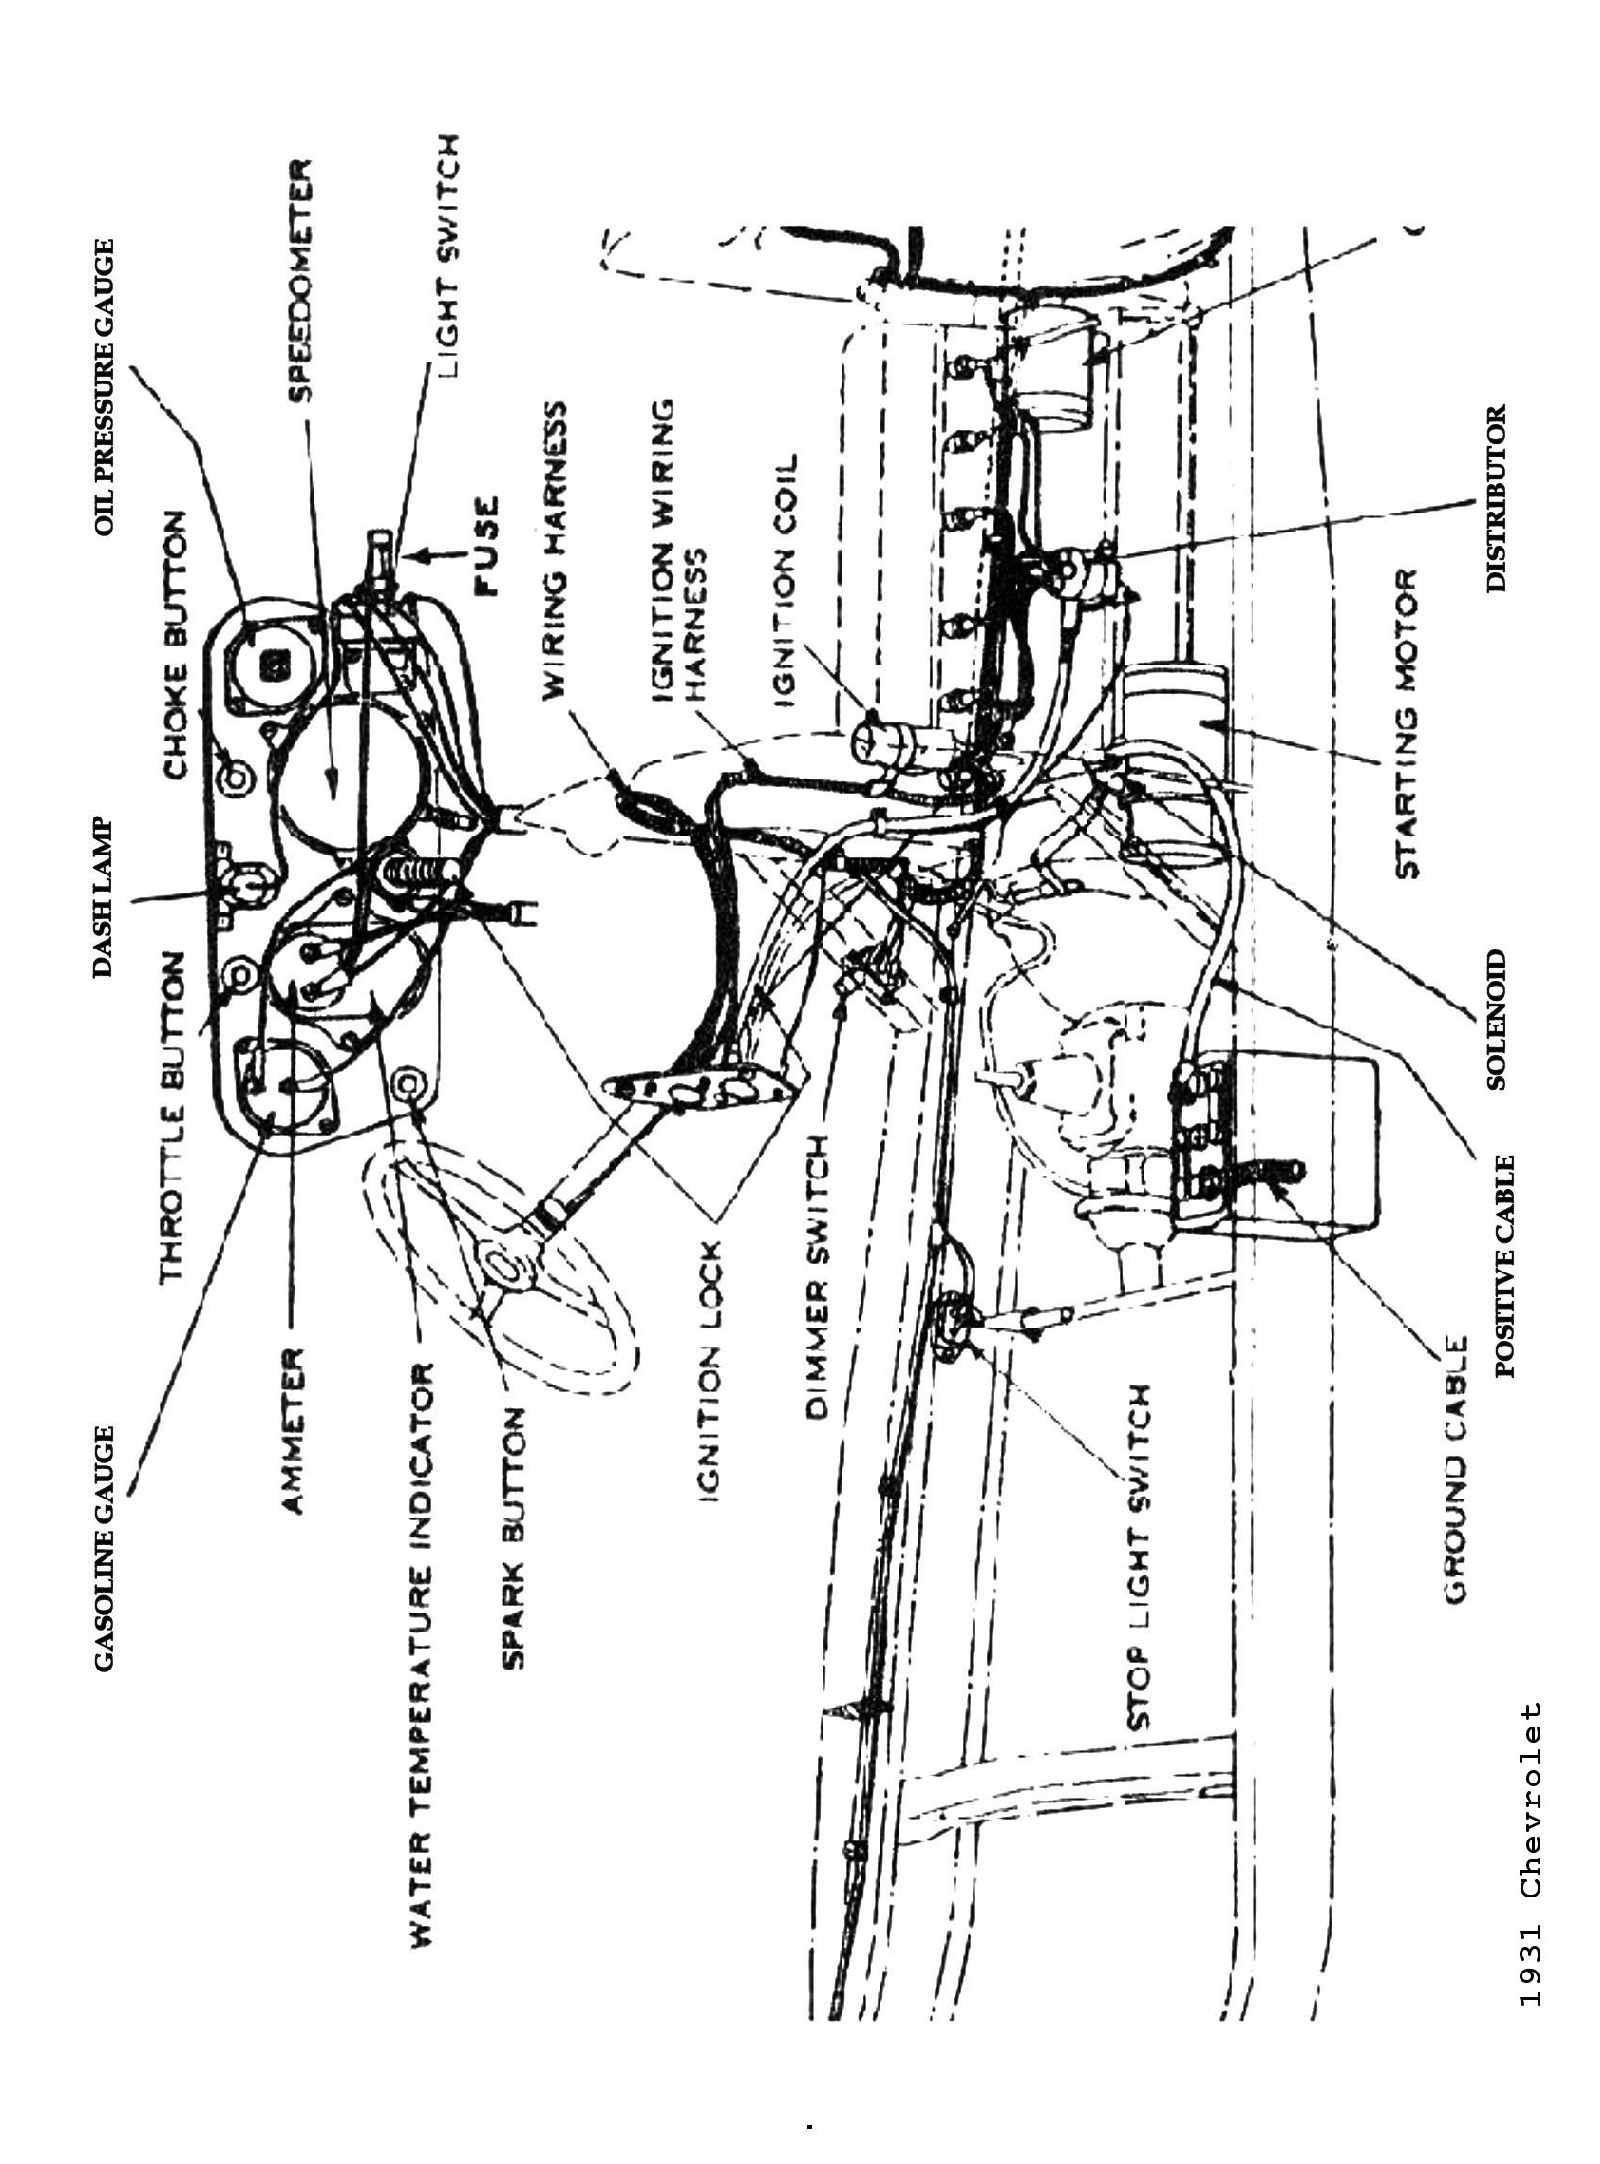 1931, 1931 Wiring Diagrams · 1931 Lighting & Ignition · 1931 Harness Diagram